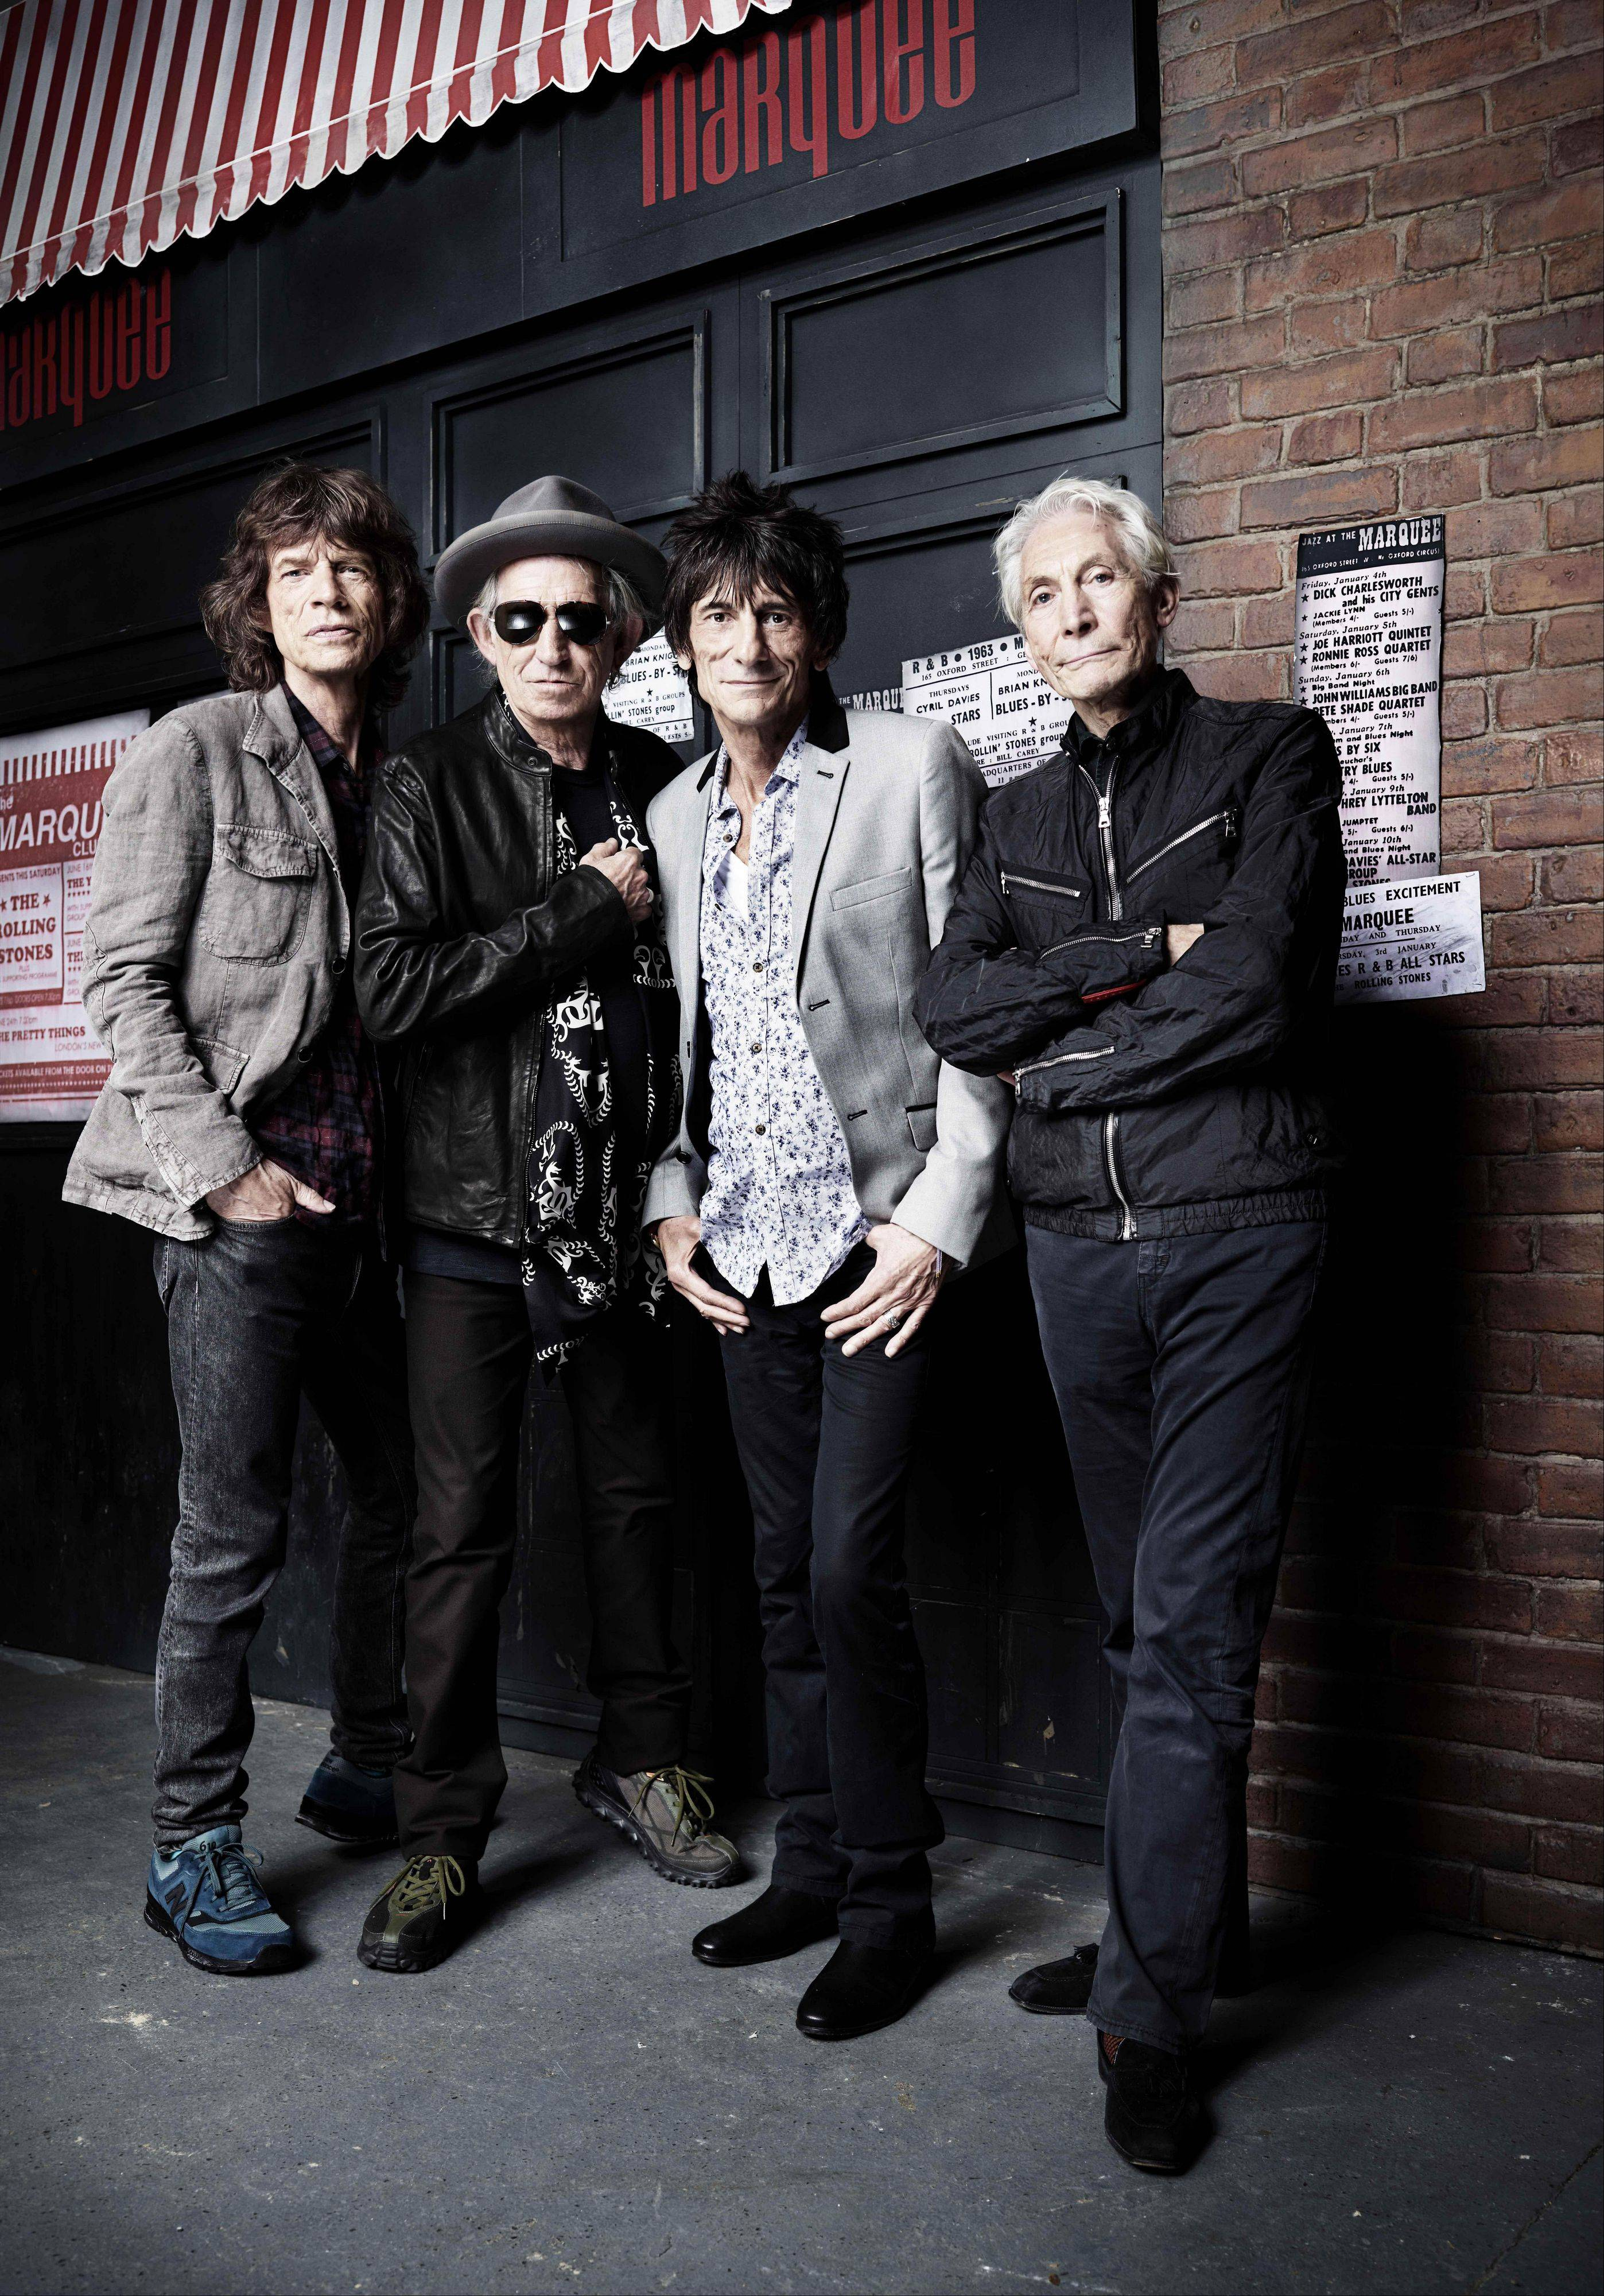 The rock band the Rolling Stones, from left, Mick Jagger, Keith Richards, Ronnie Wood and Charlie Watts marked the 50th anniversary of their first-ever live performance at the Marquee club in London.